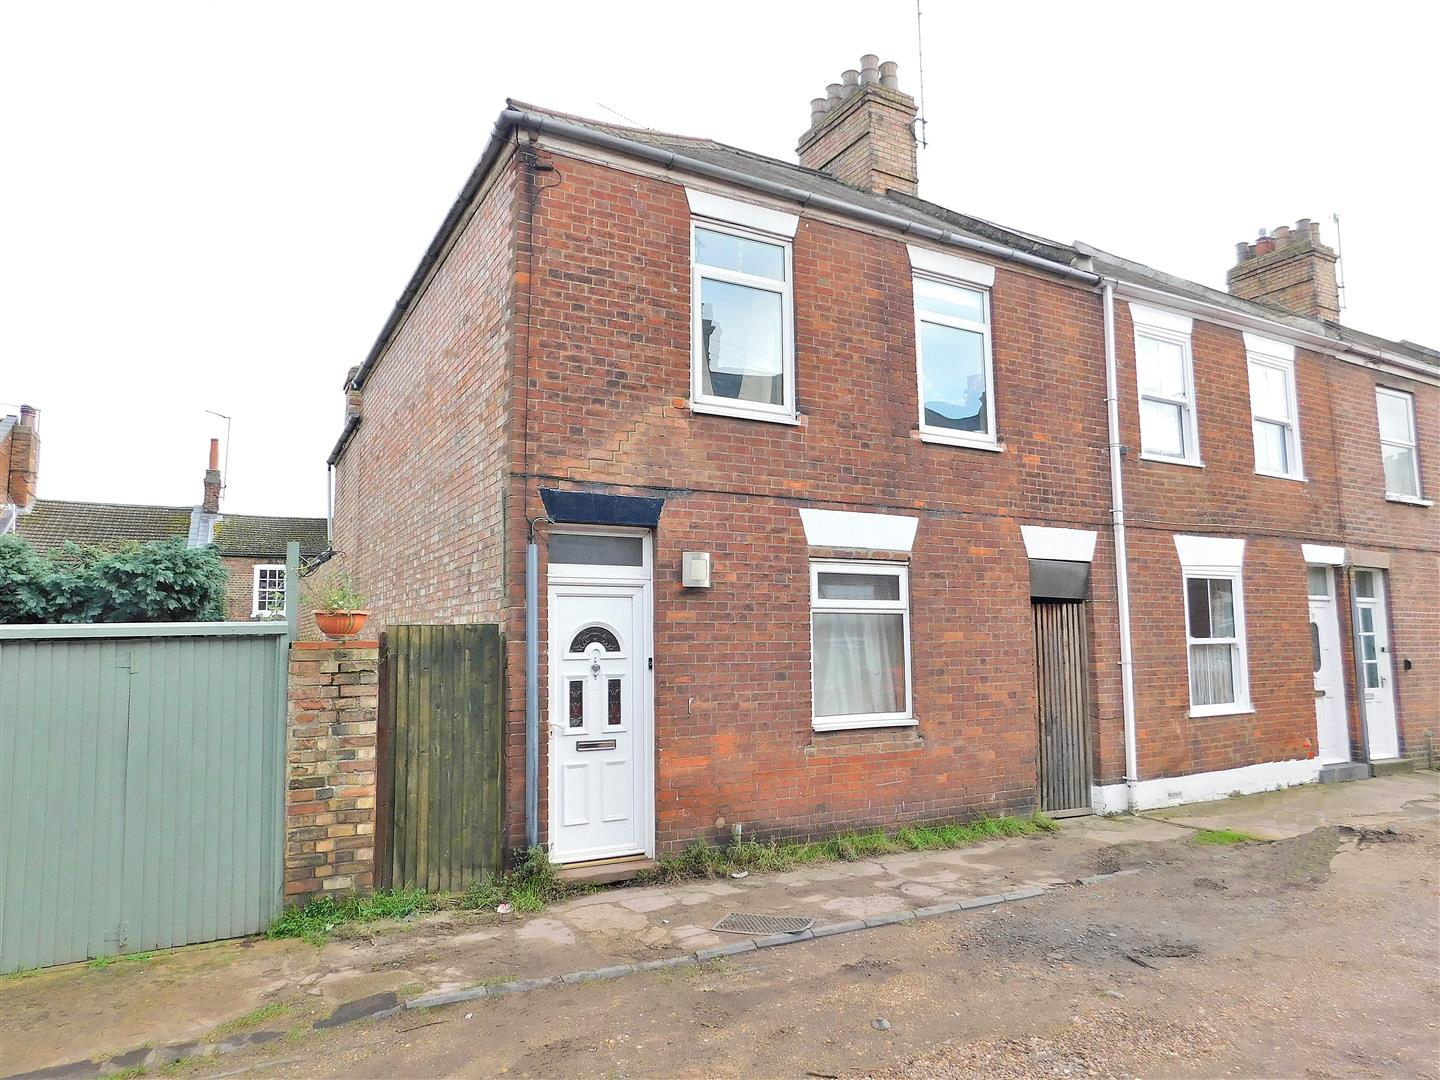 3 bed end of terrace house for sale in Albert Avenue, King's Lynn, PE30